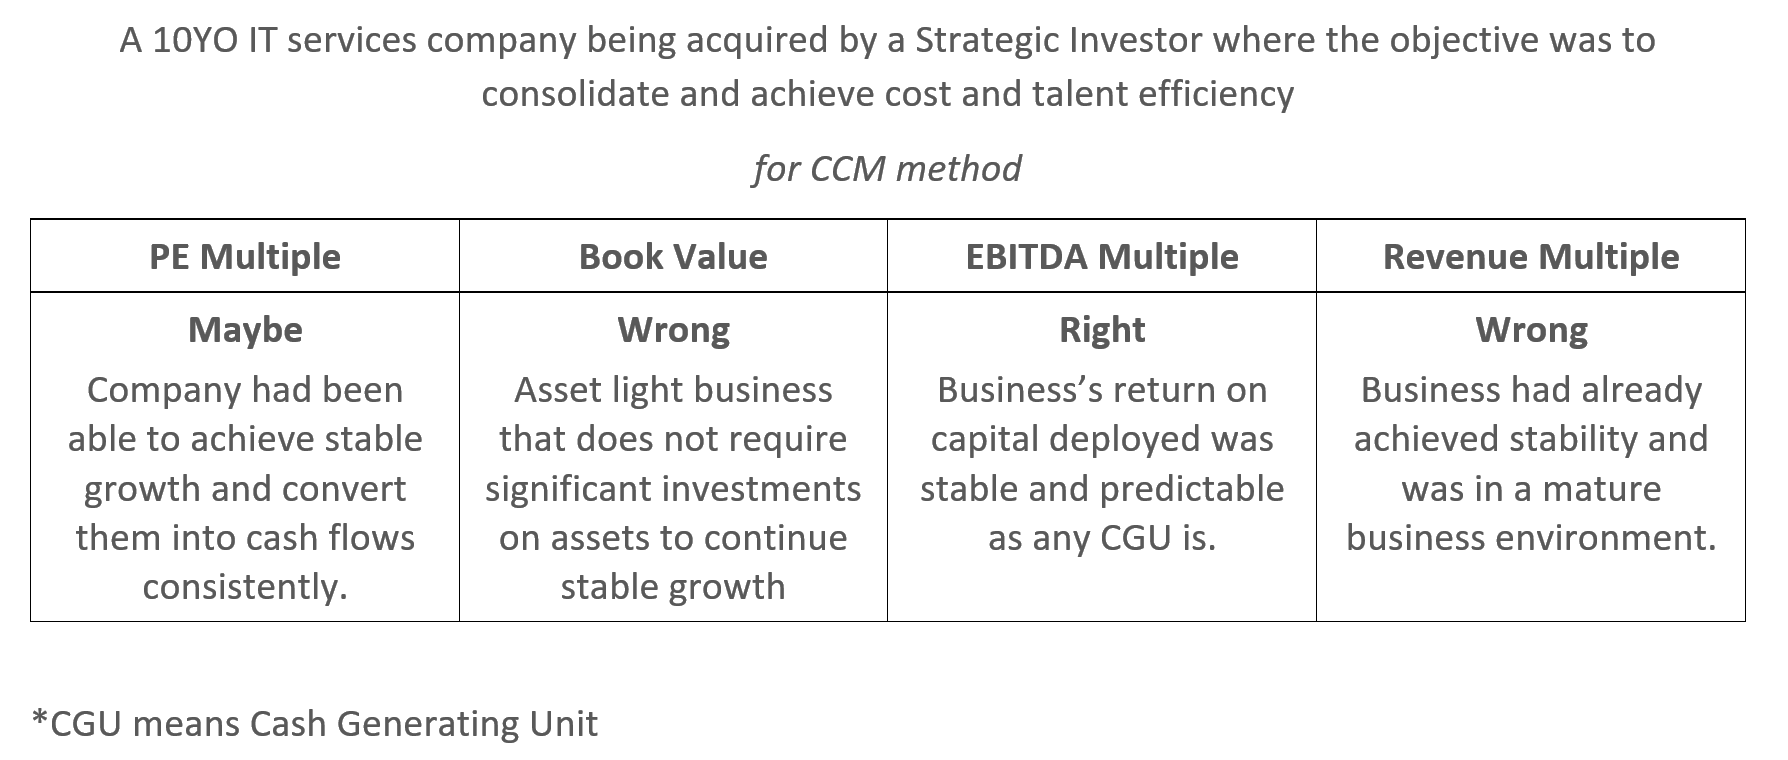 When can sales multiple be used for valuation, instead of